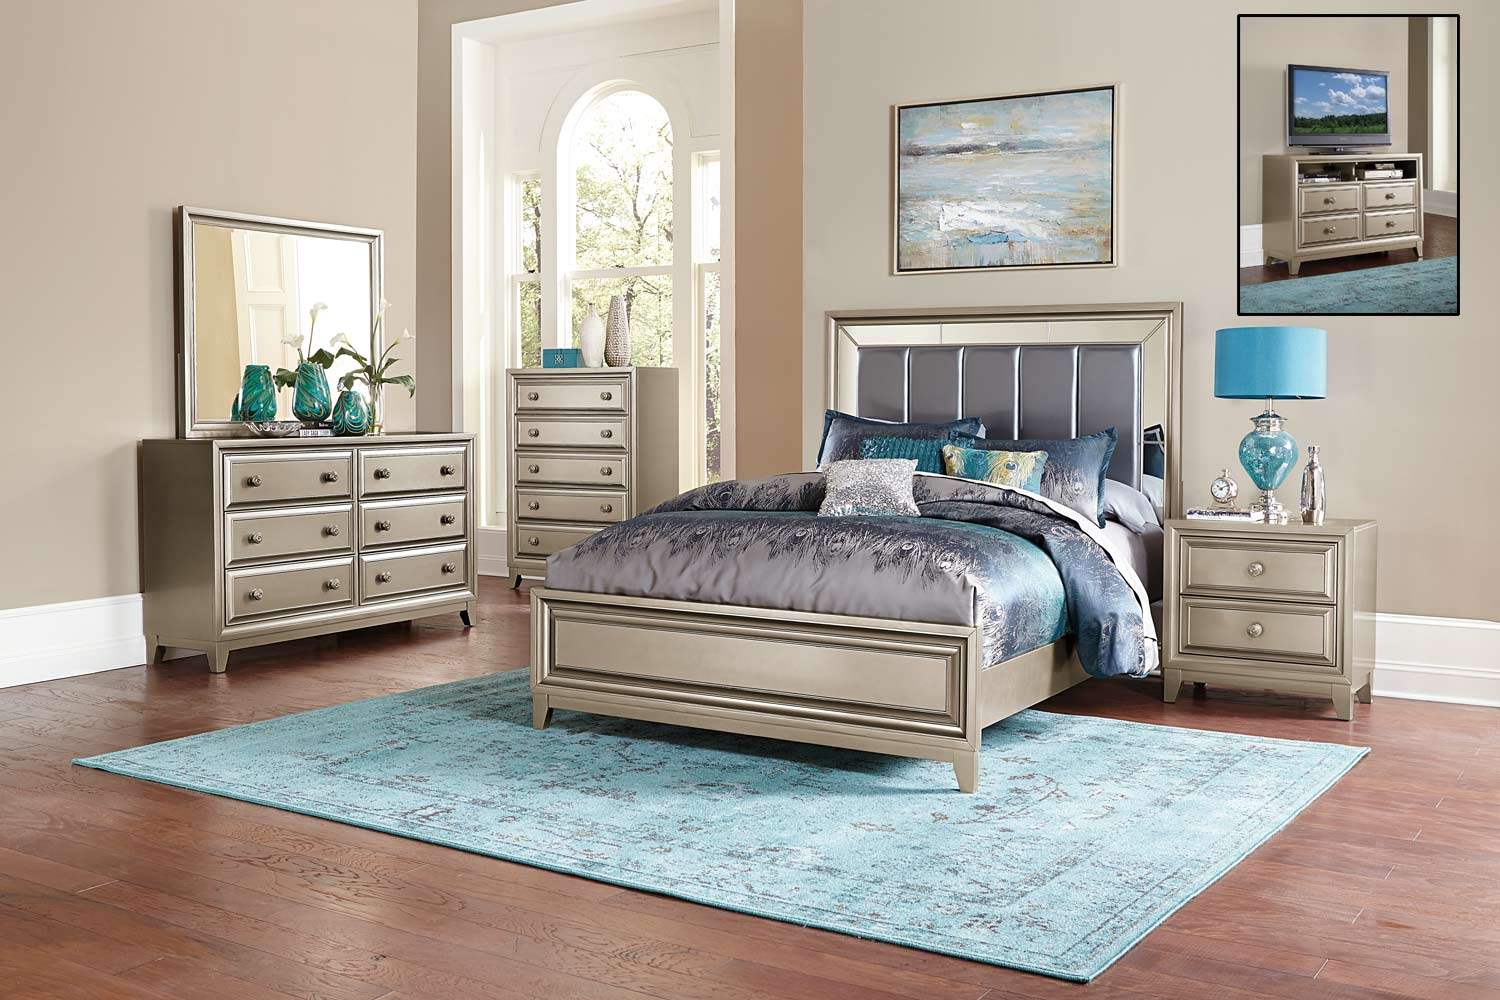 Homelegance Furniture: Hedy Bedroom Collection